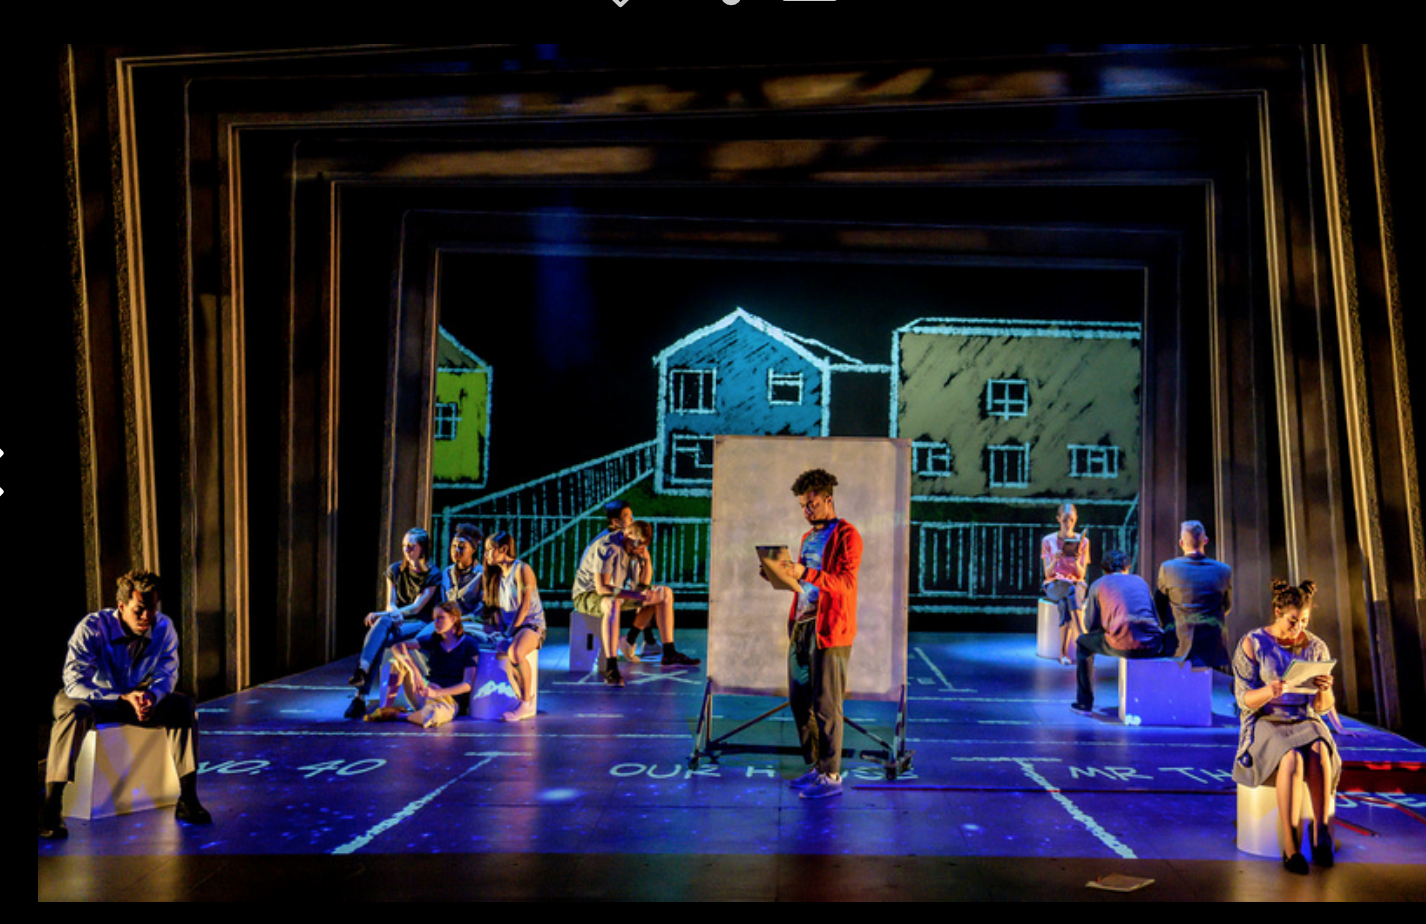 The Curious Incident of the Dog at Nighttime playing at the Illinois Theater on Feb. 18.